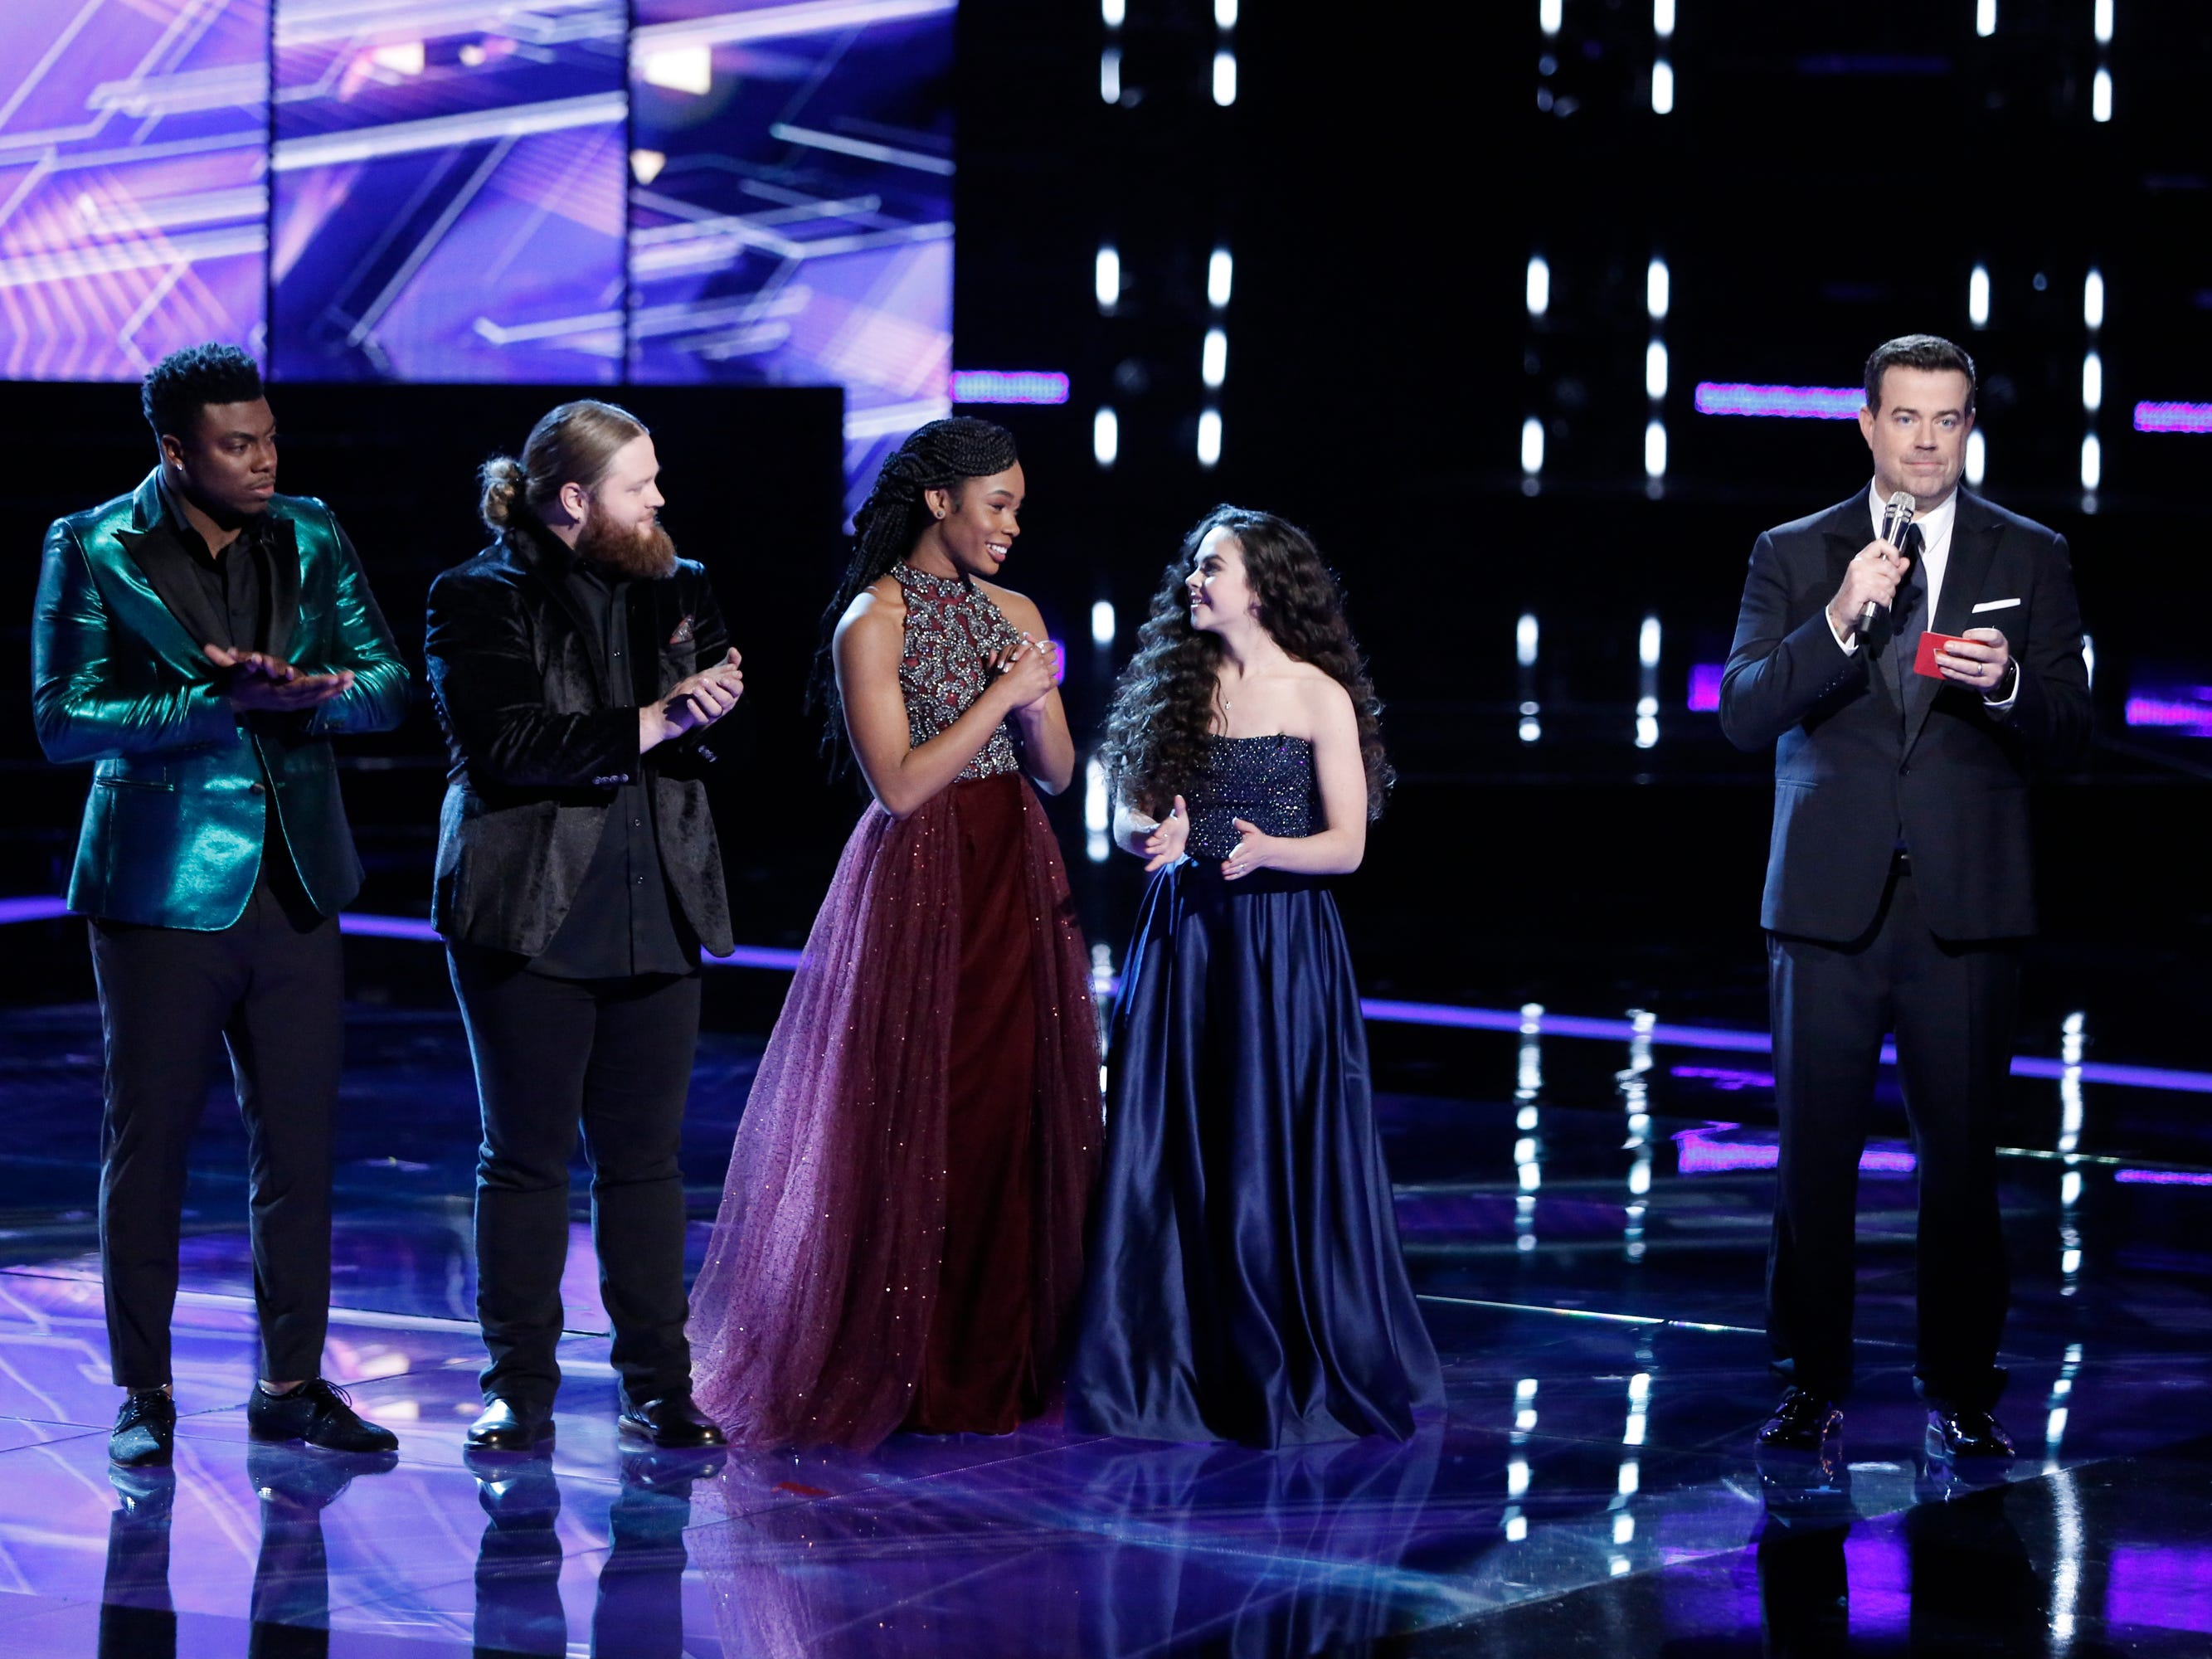 """Finalists (left to right) Kirk Jay, Chris Kroeze, Kennedy Holmes and Chevel Shepherd wait for Carson Daly to reveal the winner of """"The Voice"""" season 15 Dec. 18."""